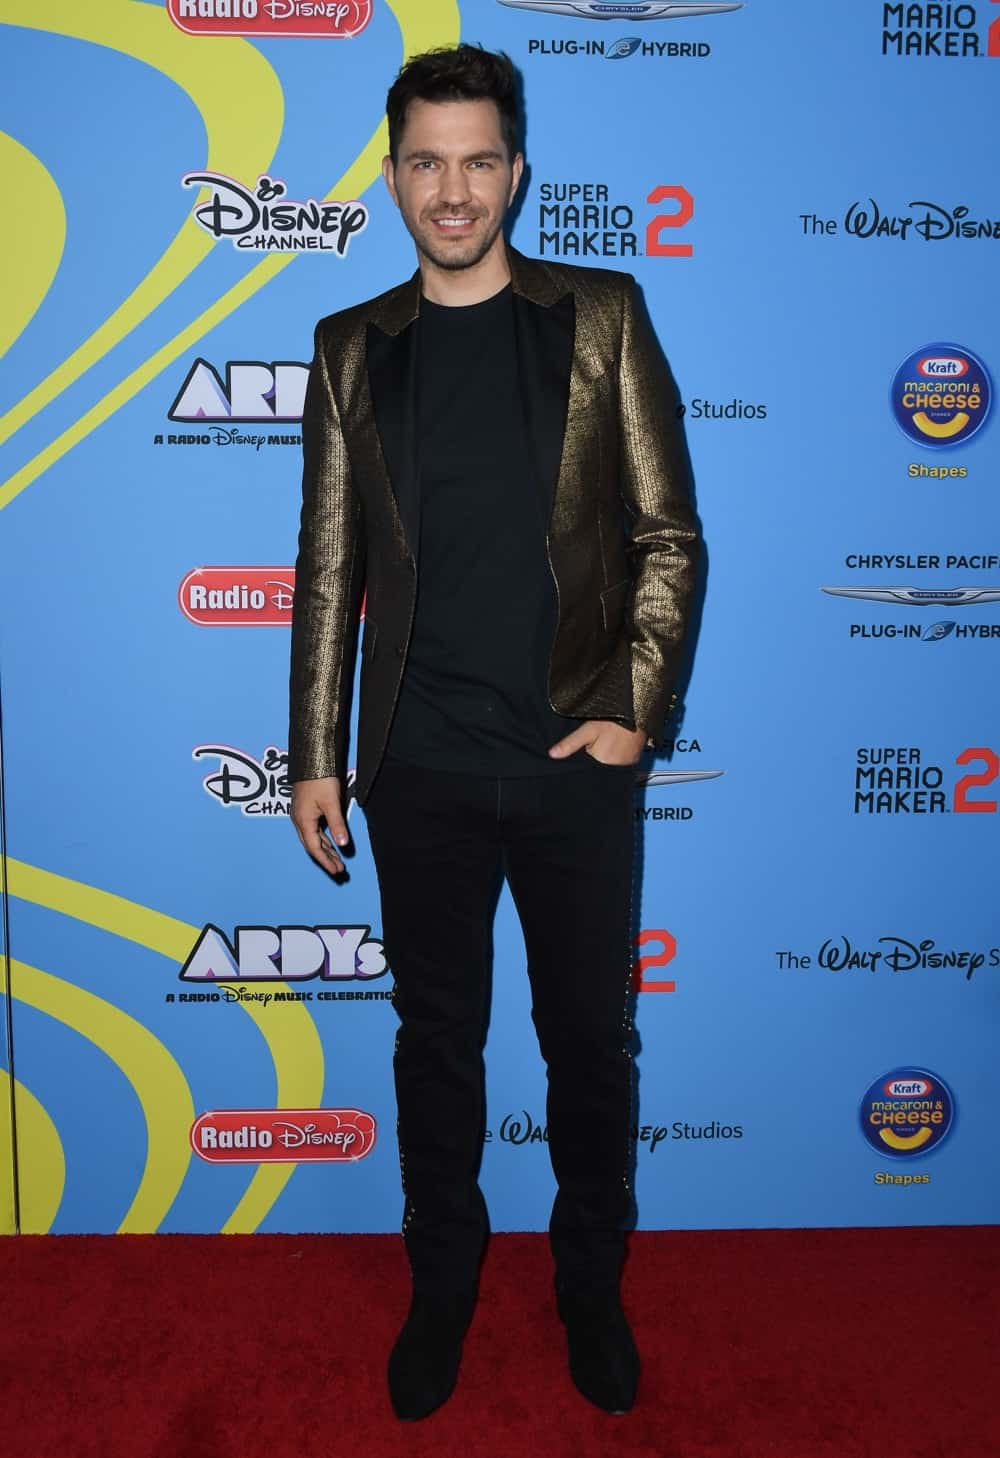 Andy Grammer arrives for the 2019 ARDYs